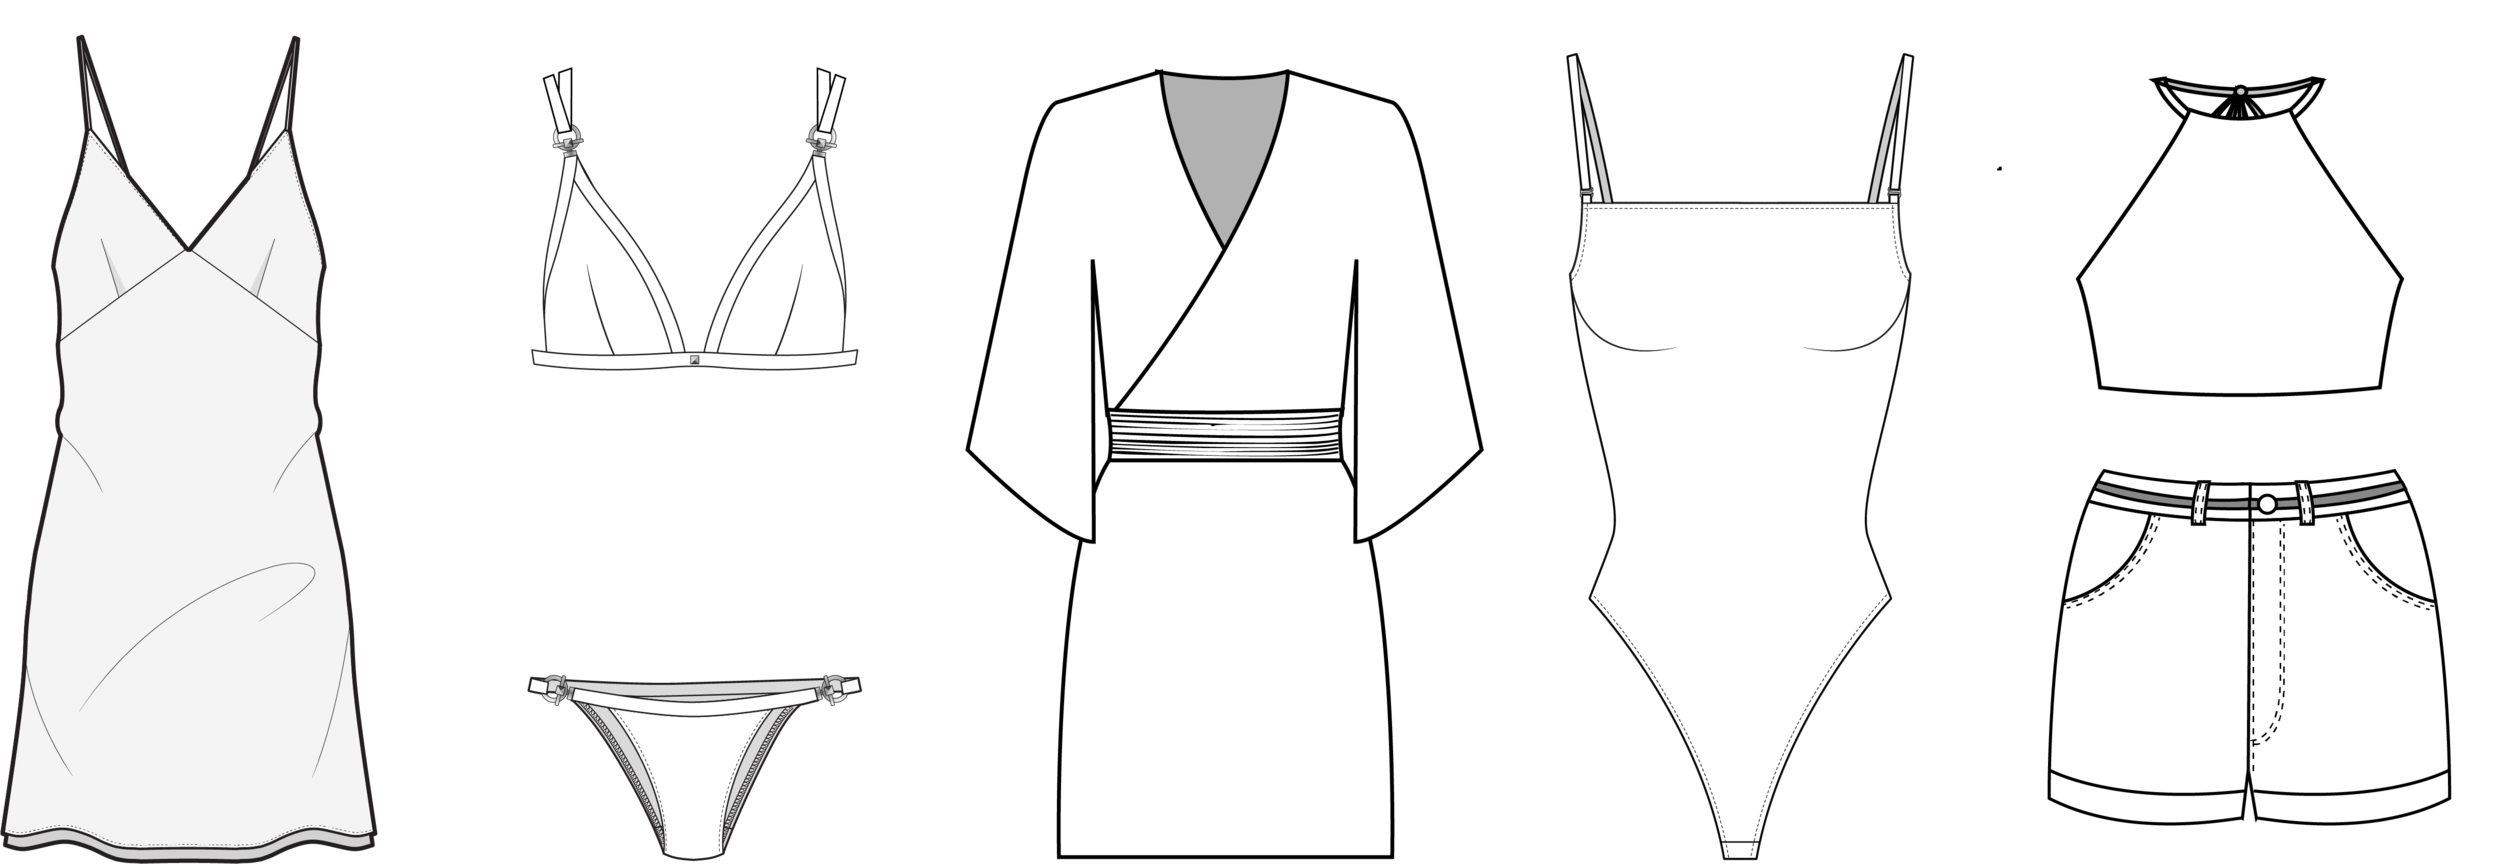 DOUBLE_LAYER_SLIP_DRESS.png